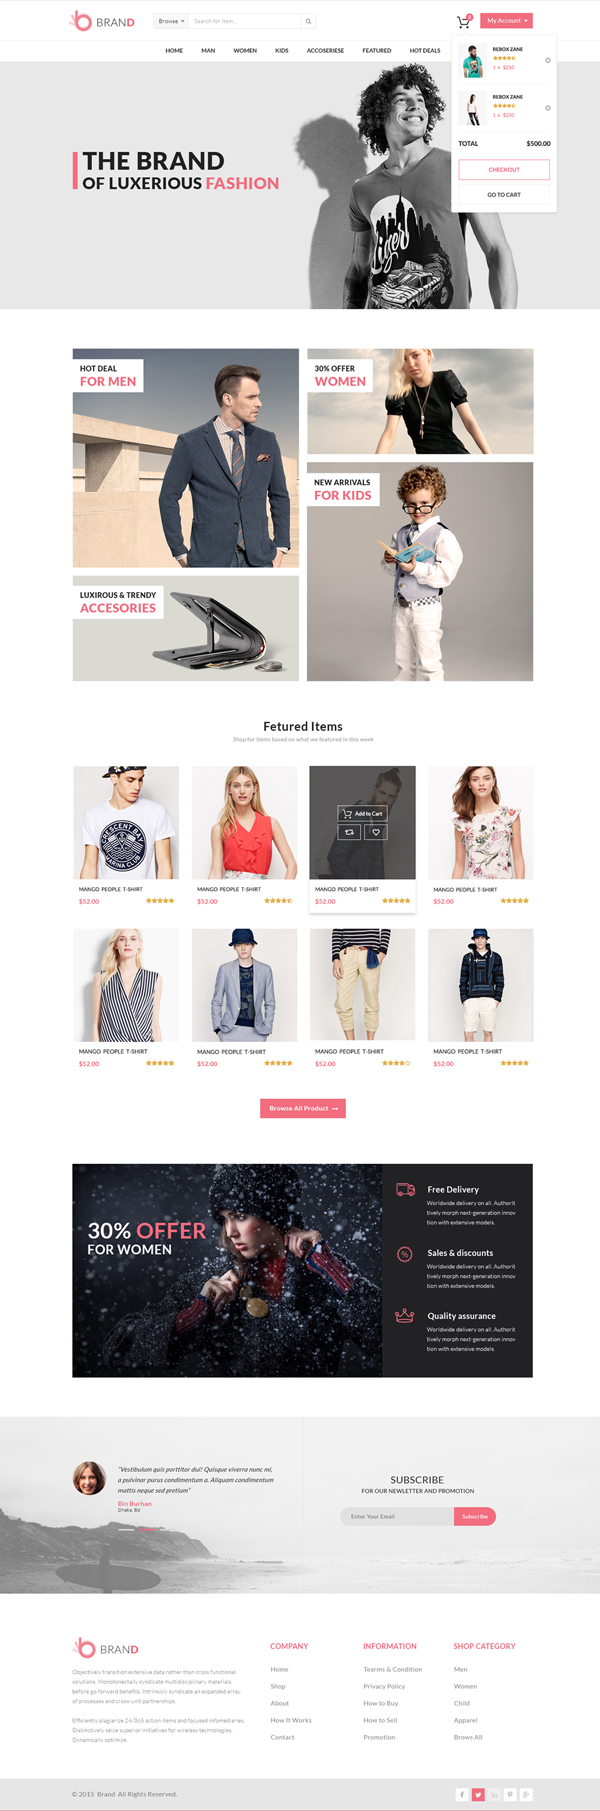 Free eCommerce Template for Fashion Store - Brand